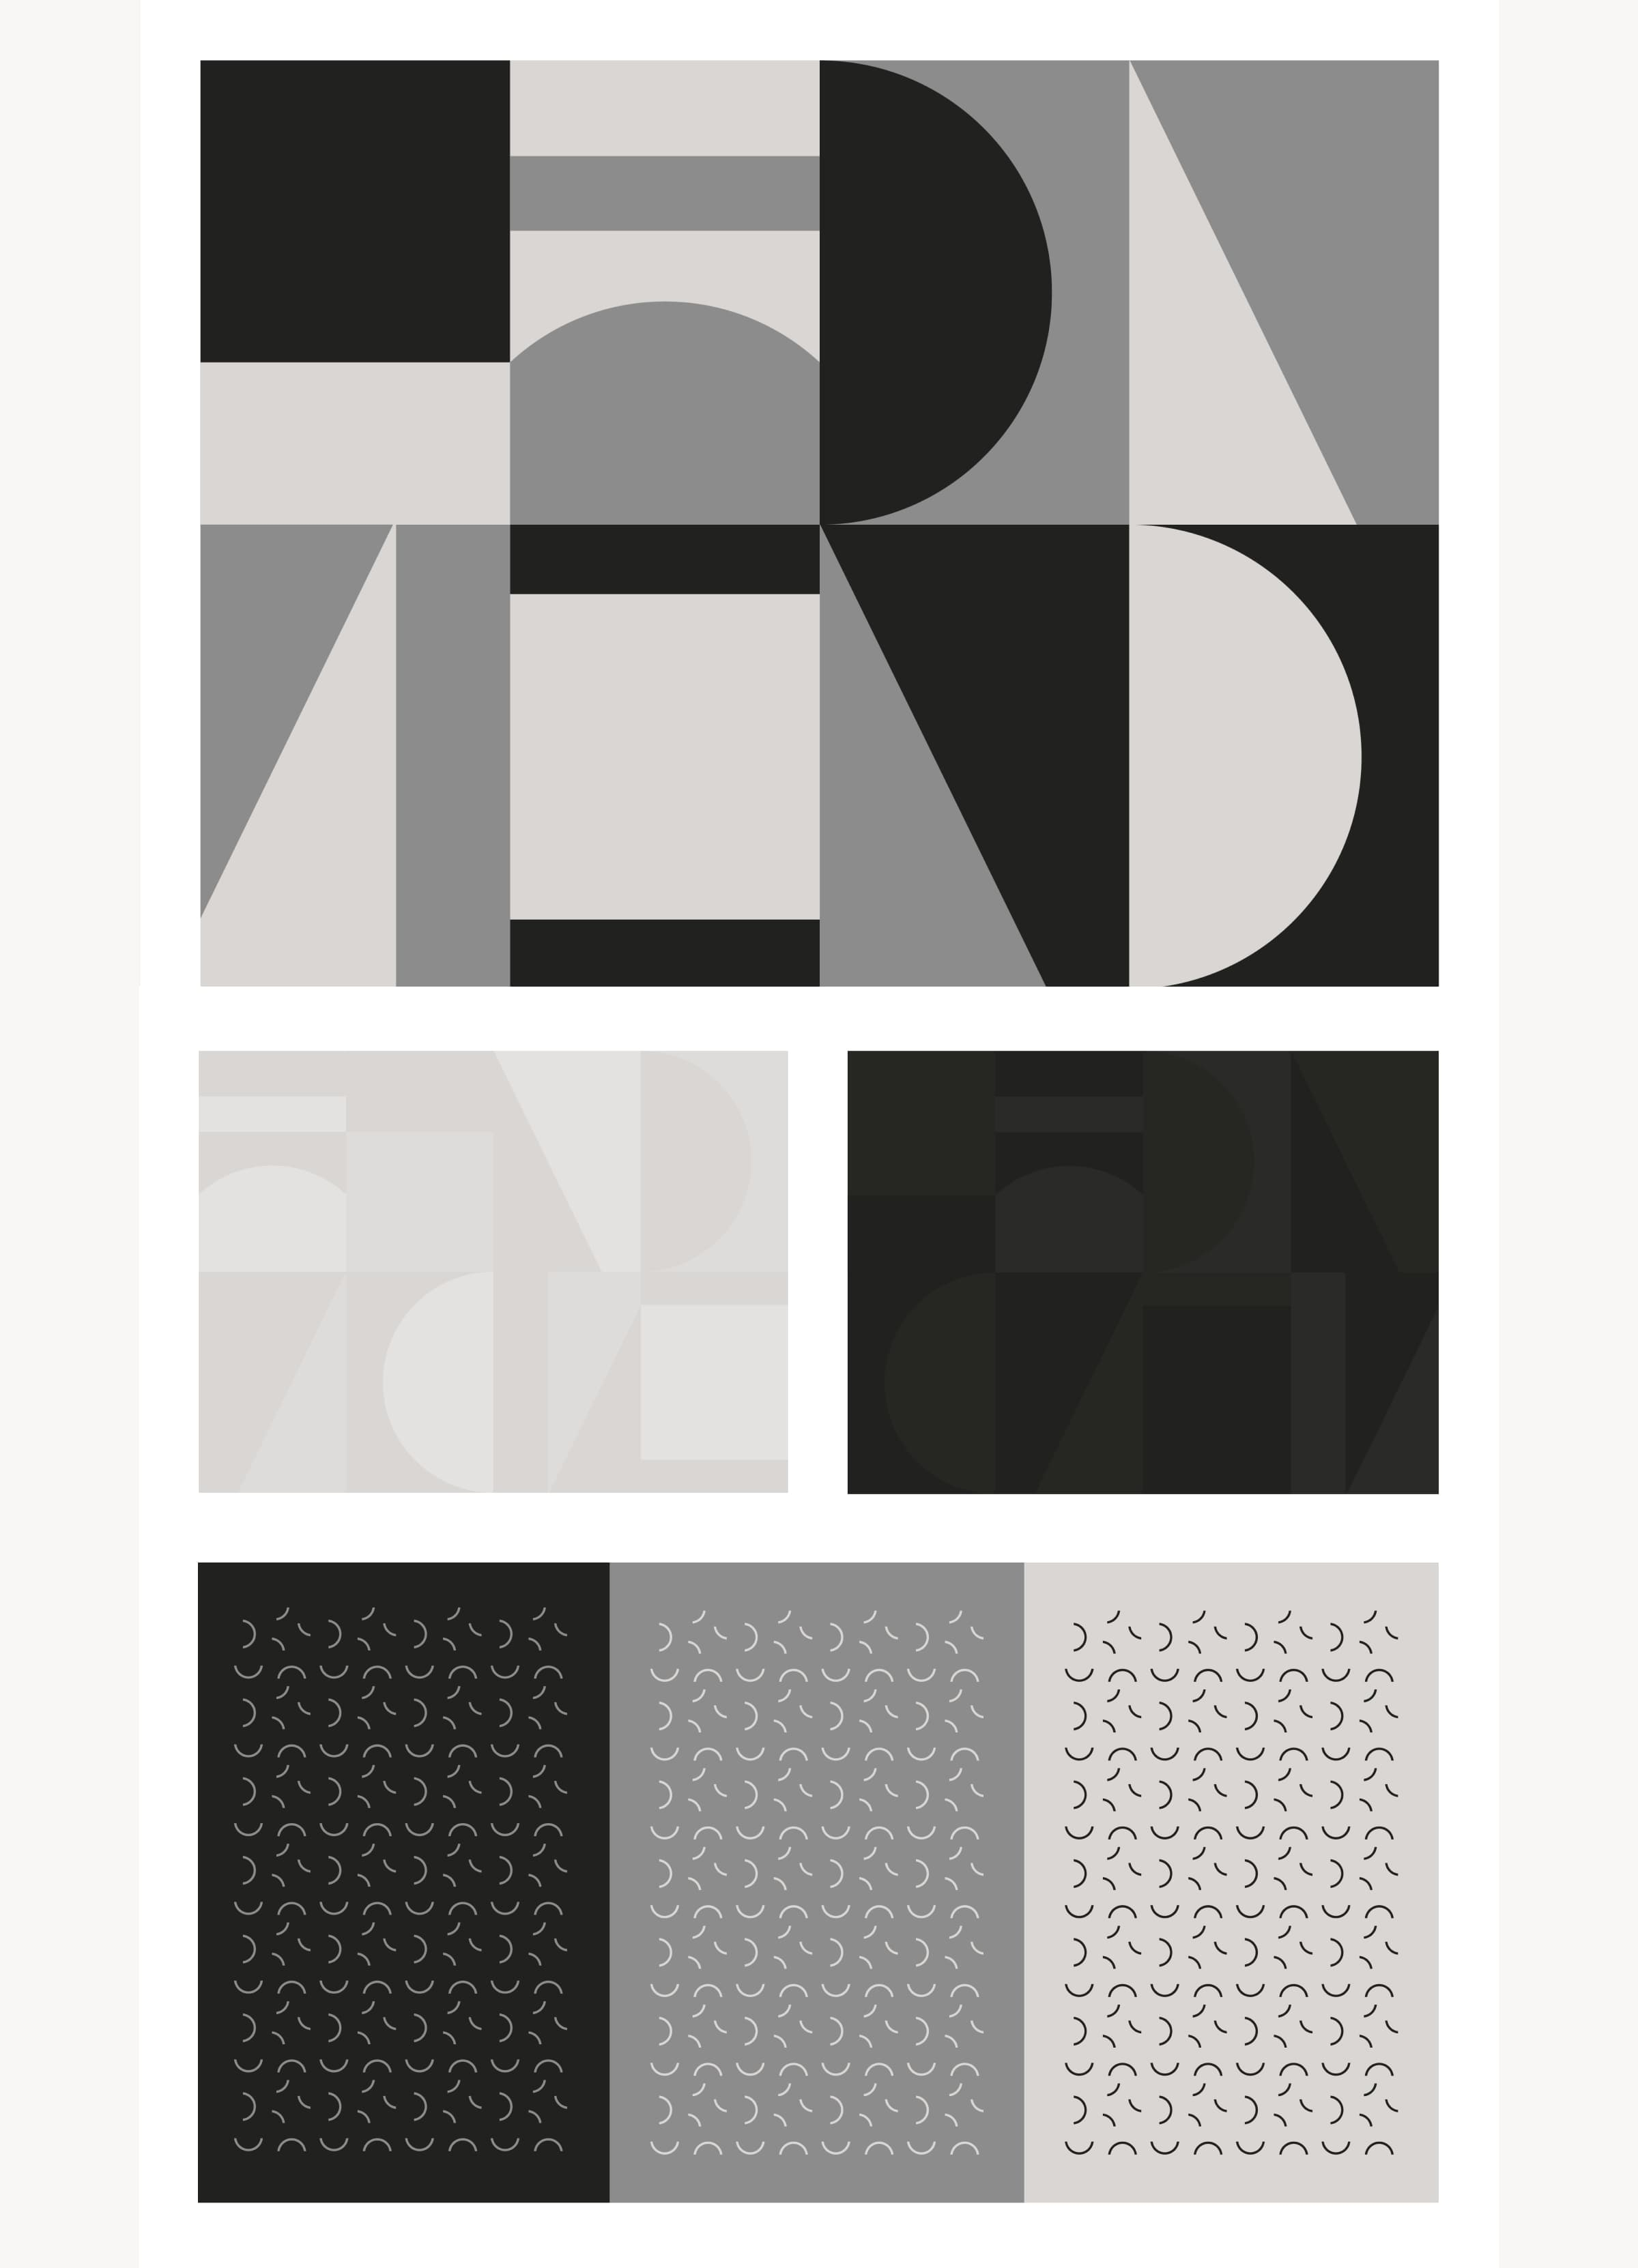 A variety of images showing ōLiv's brand patterns, from bold, macro shapes to textural, micro squiggles.